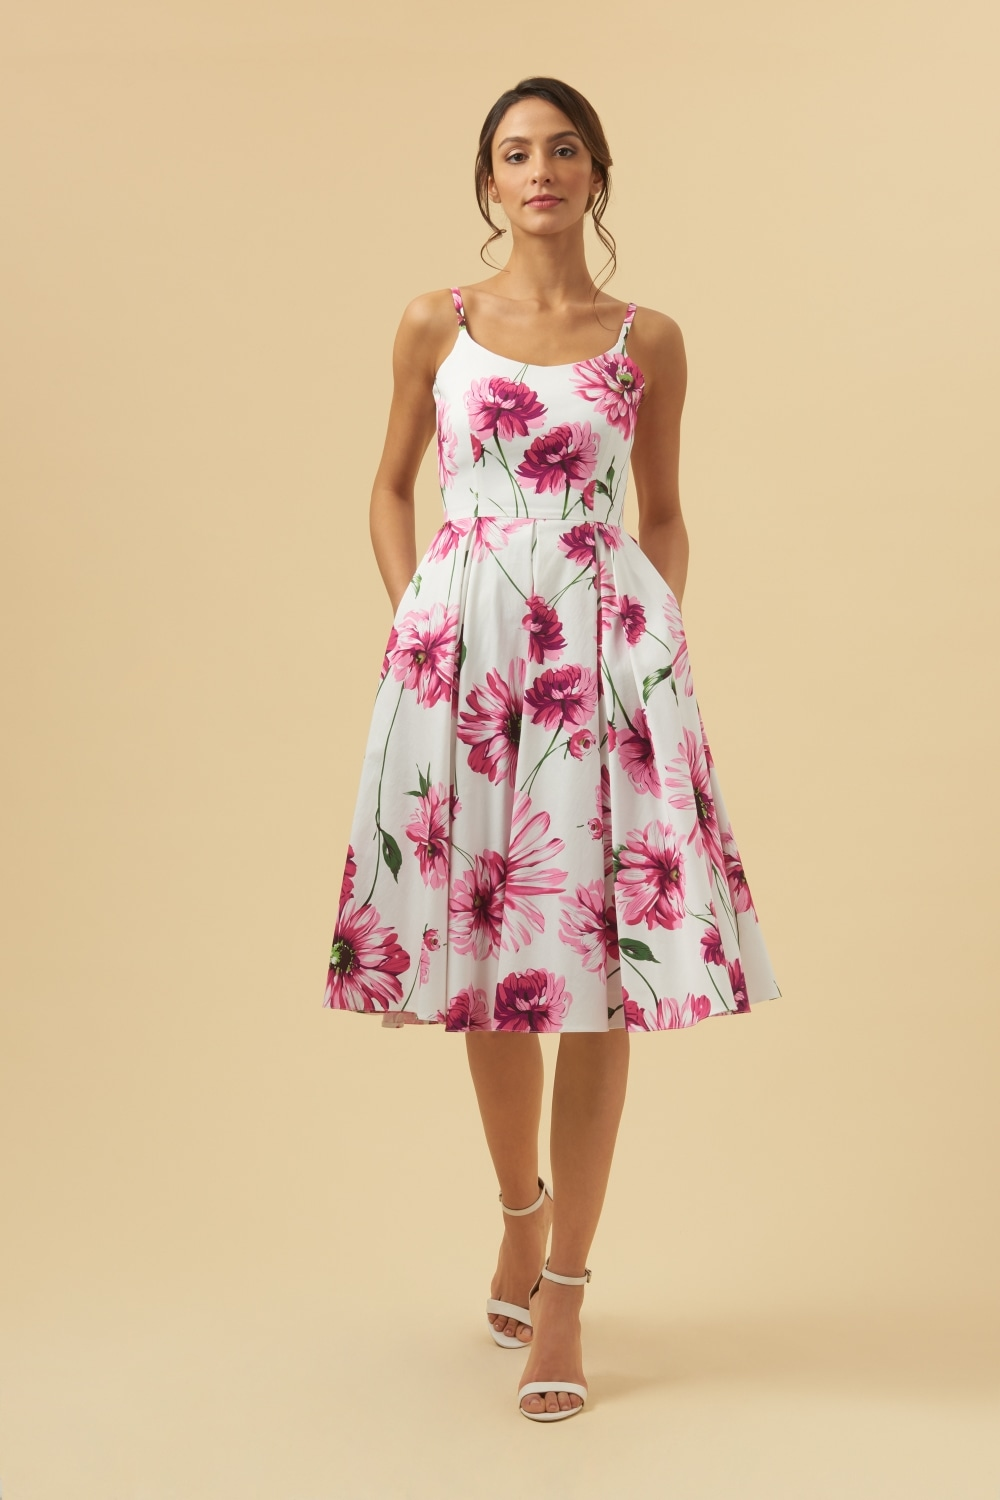 Pink Pretty dress pictures foto